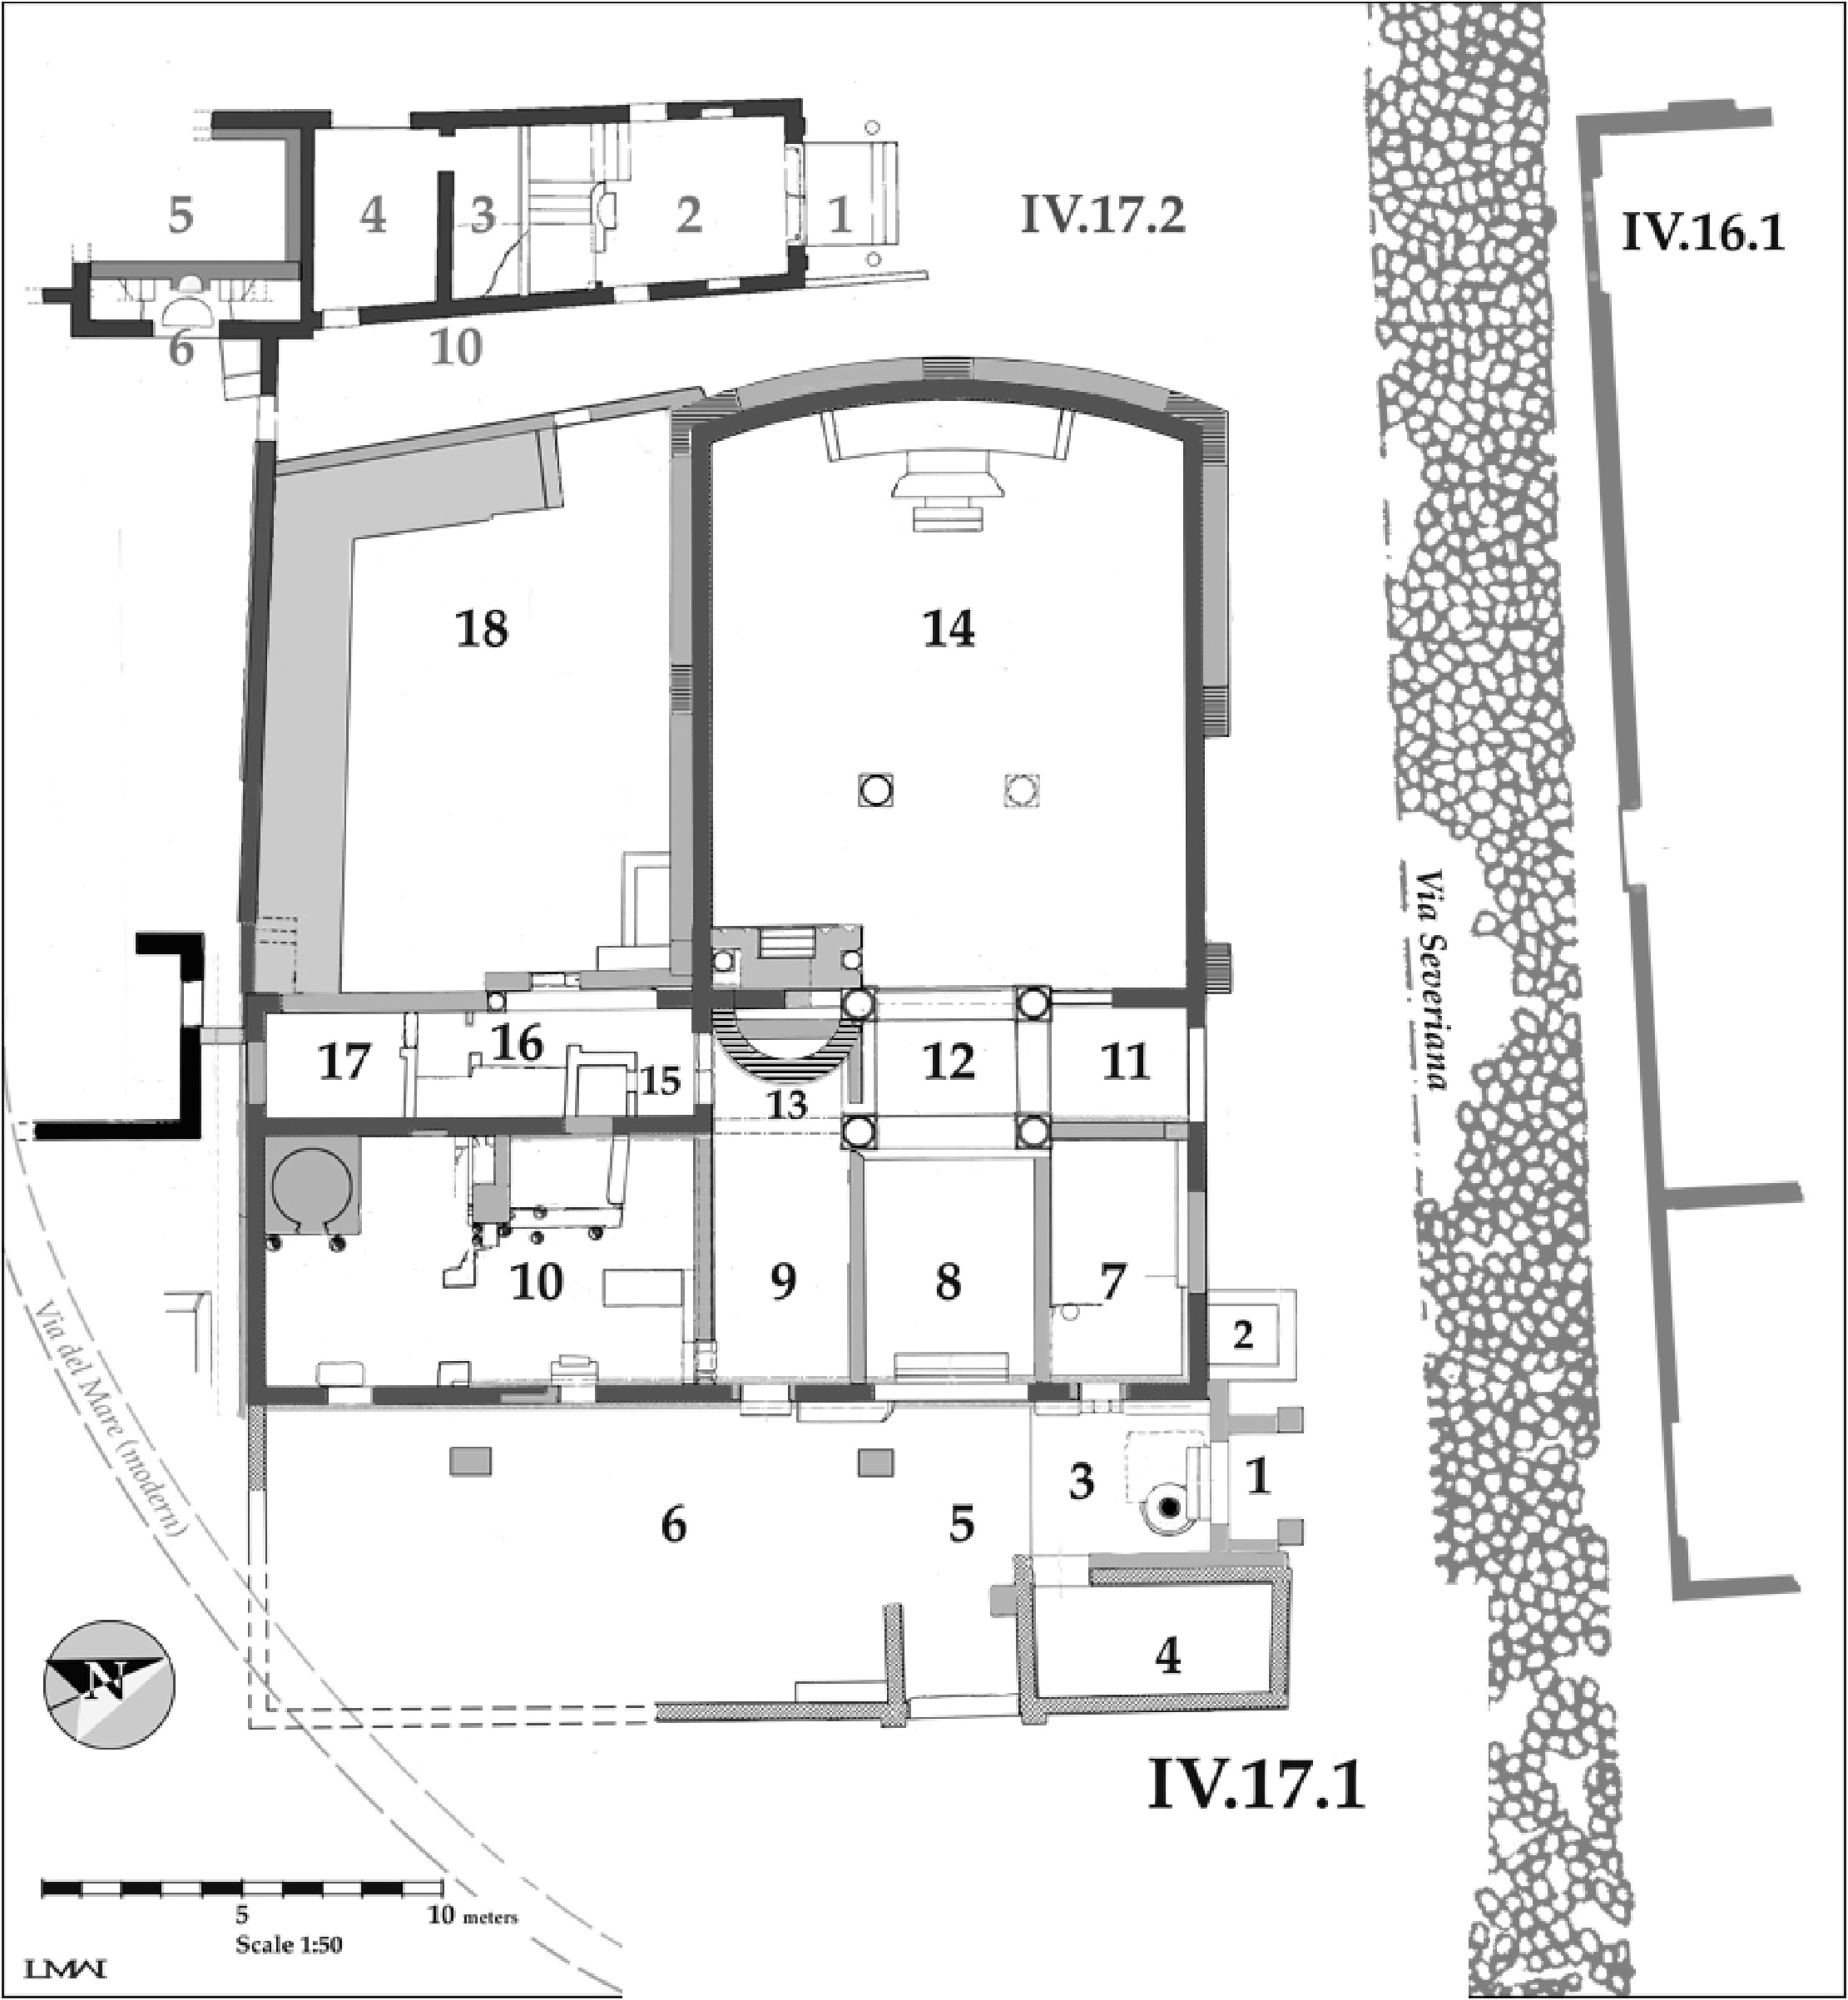 Approved Room Numbers For Synagogue Site